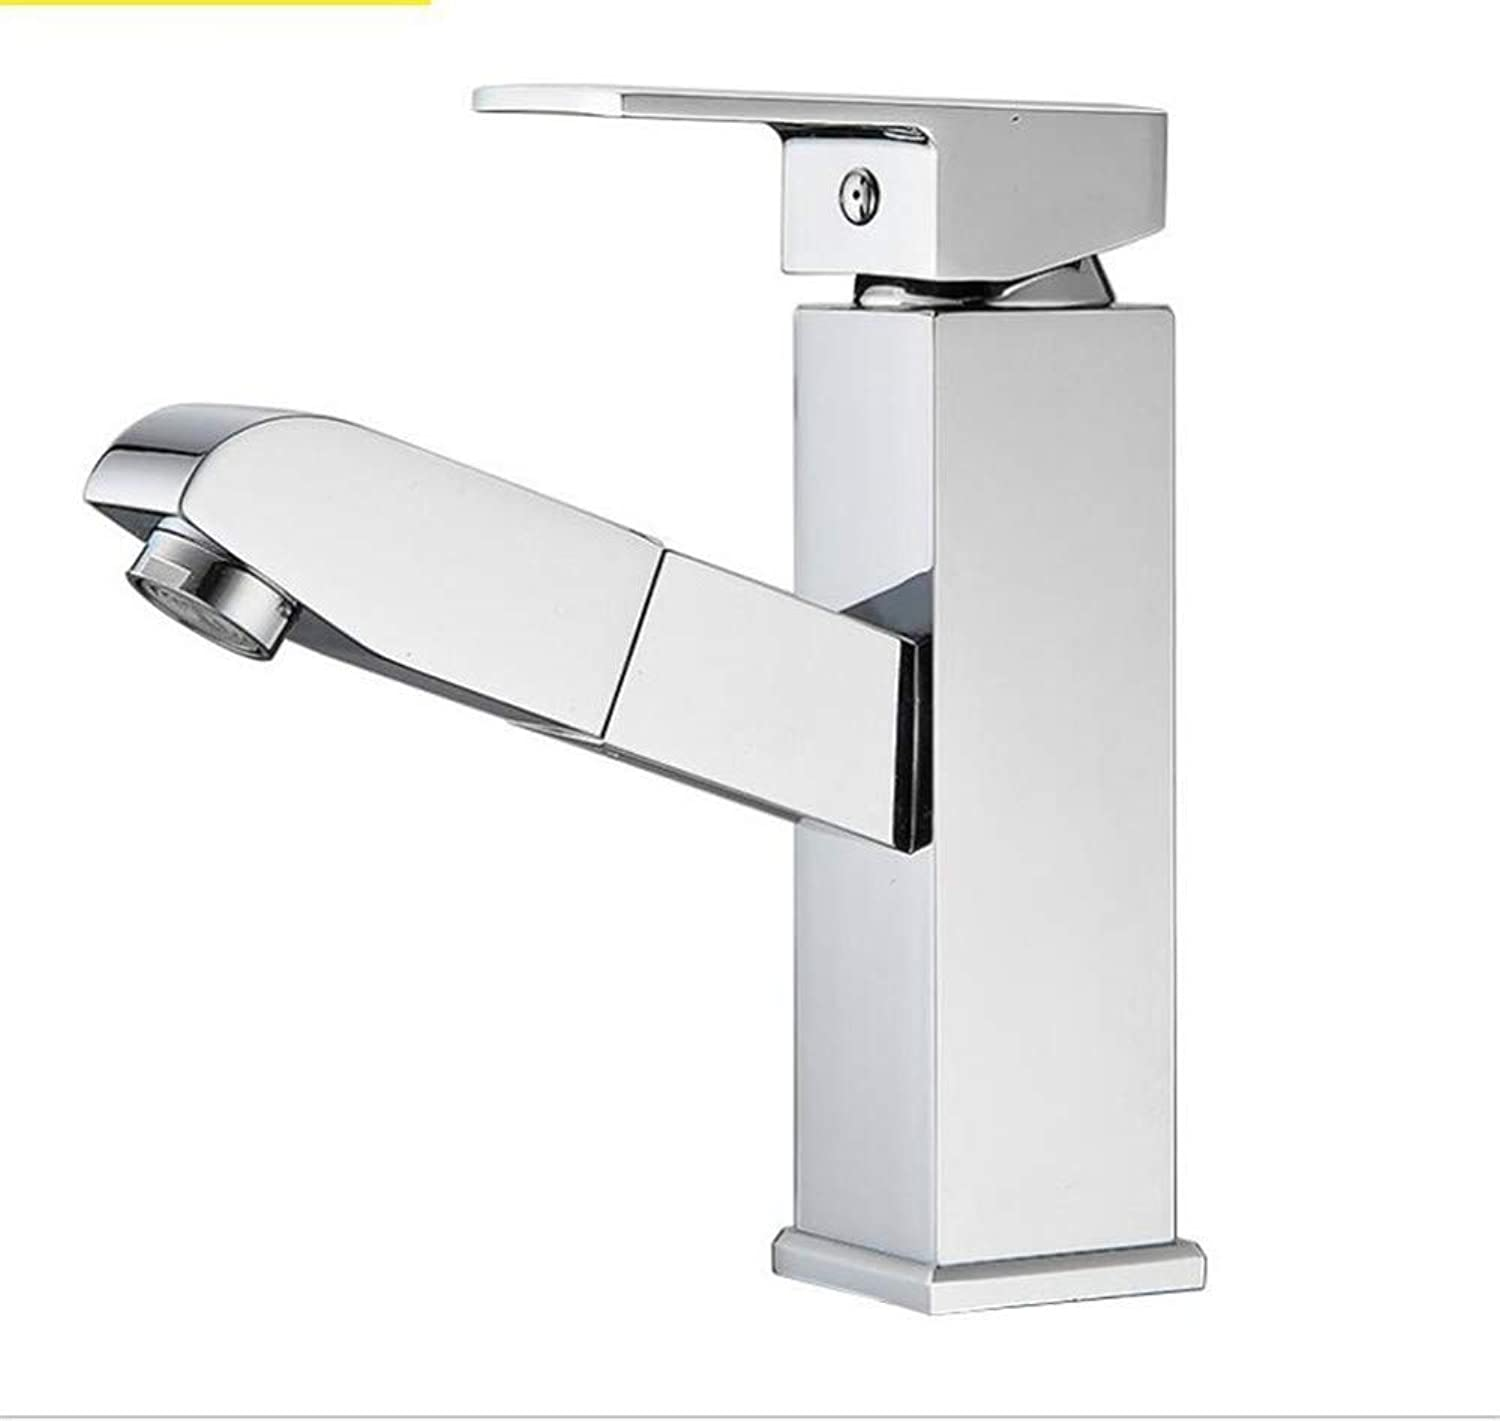 Bathroom Sink Basin Lever Mixer Tap Copper Four-Side Basin Pumping Faucet Cold and Hot Single-Hole Basin Faucet